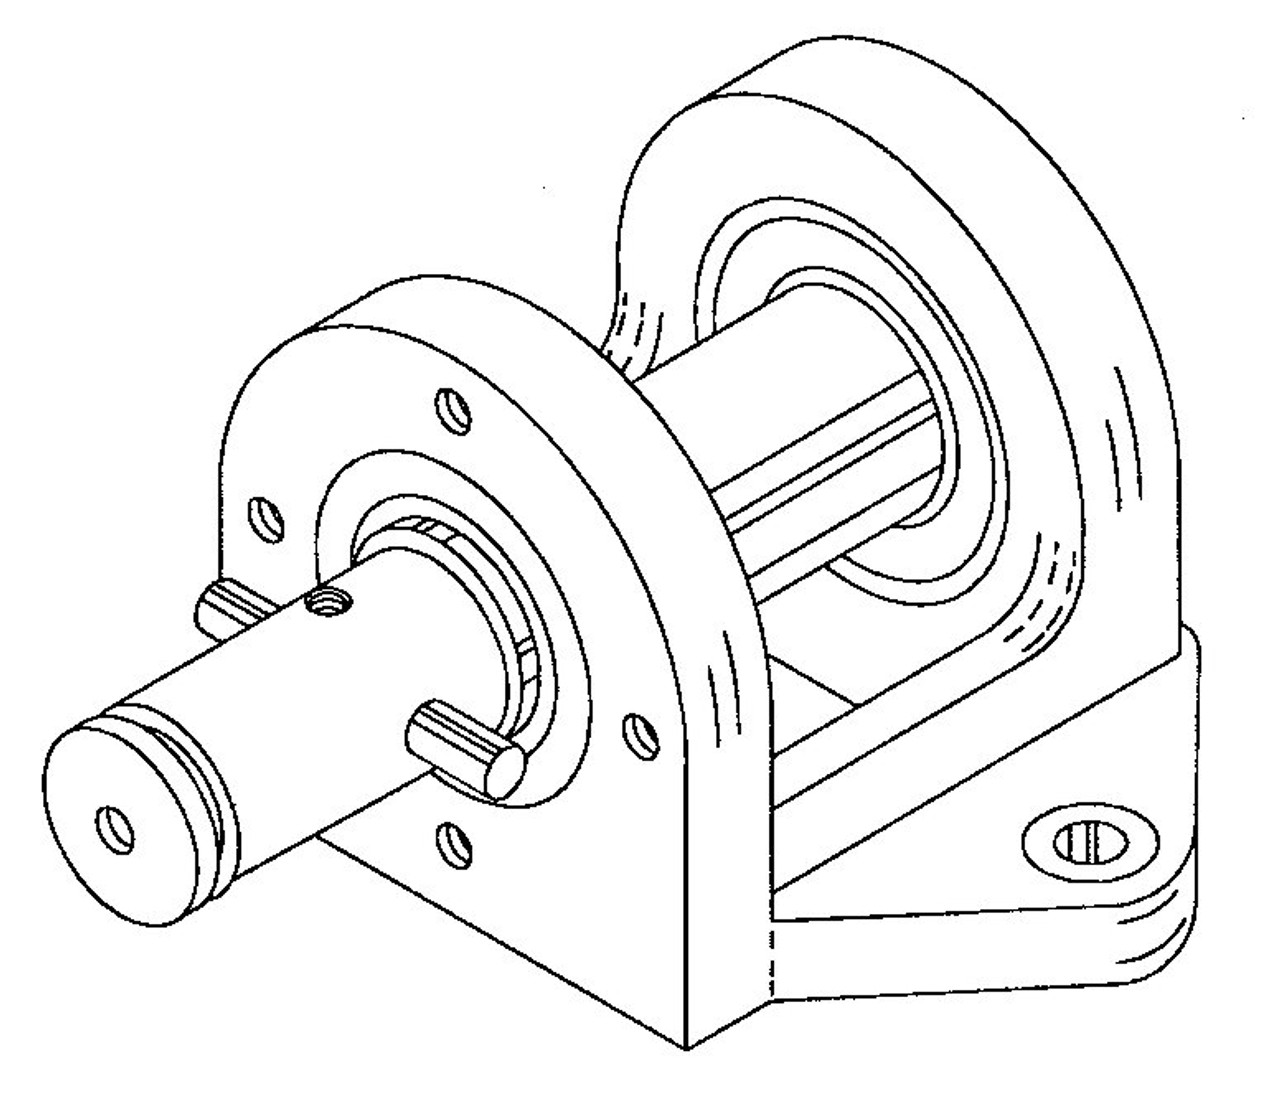 Hobart Saws - Upper Bearing Housing Assembly - H179A - 5700,5701,5801